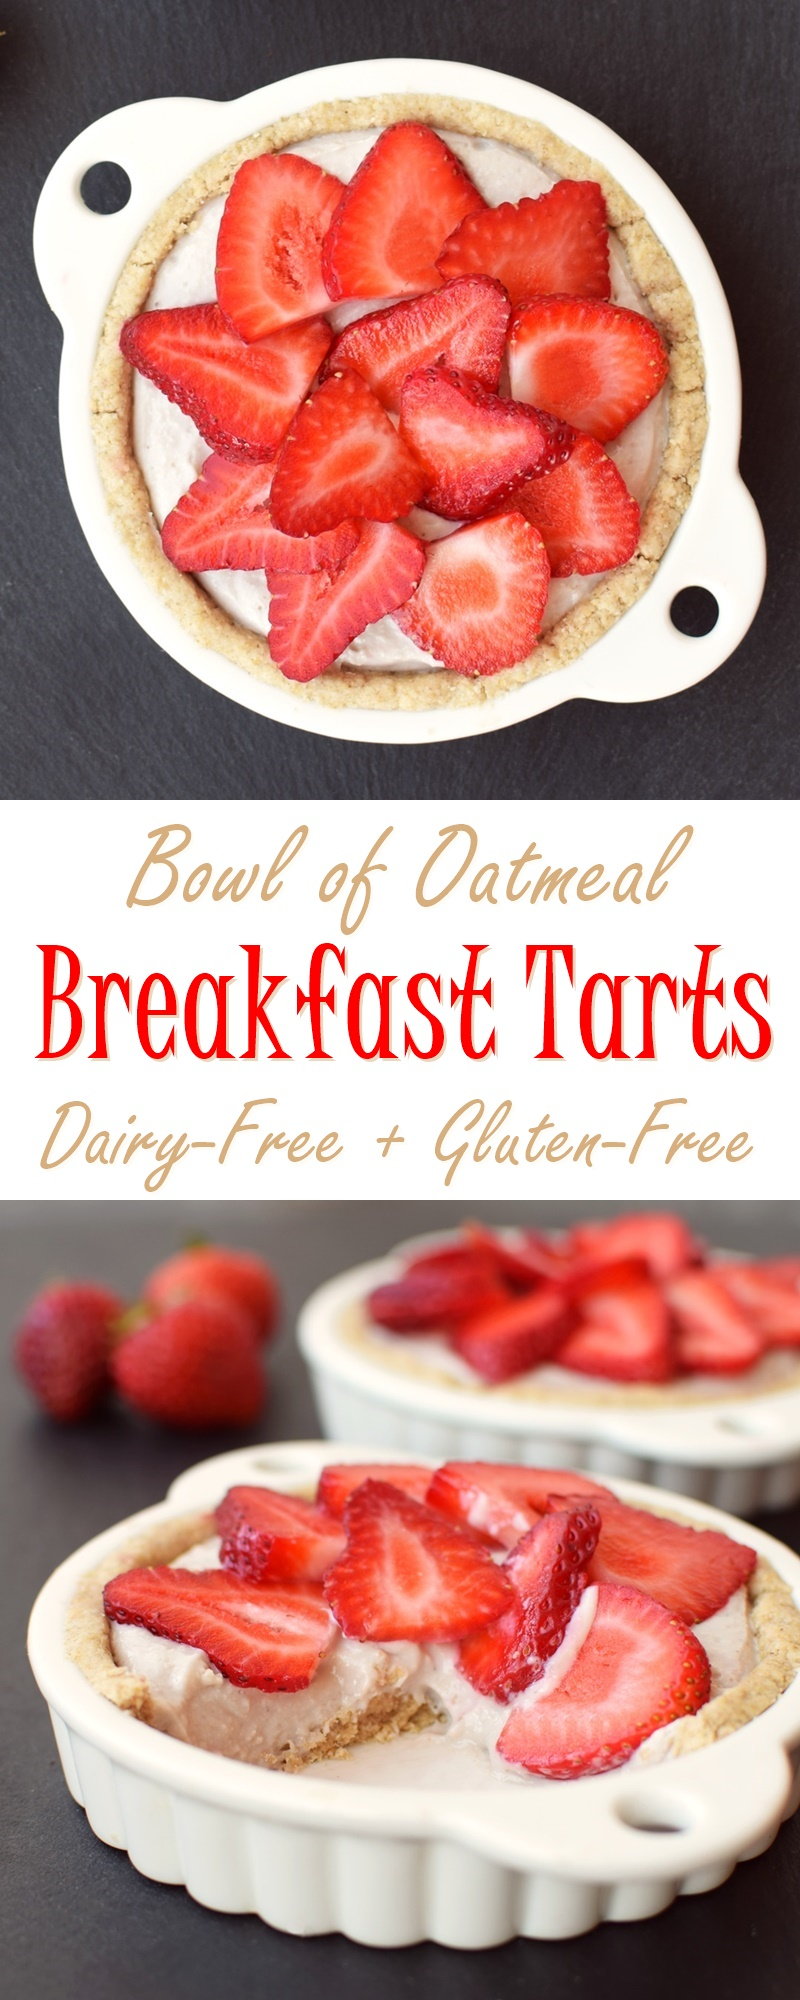 """Dairy Free Breakfast Tarts Recipe - """"Bowl of Oatmeal"""" Crust with Creamy Fruit Filling (naturally healthy, gluten-free and plant-based)"""